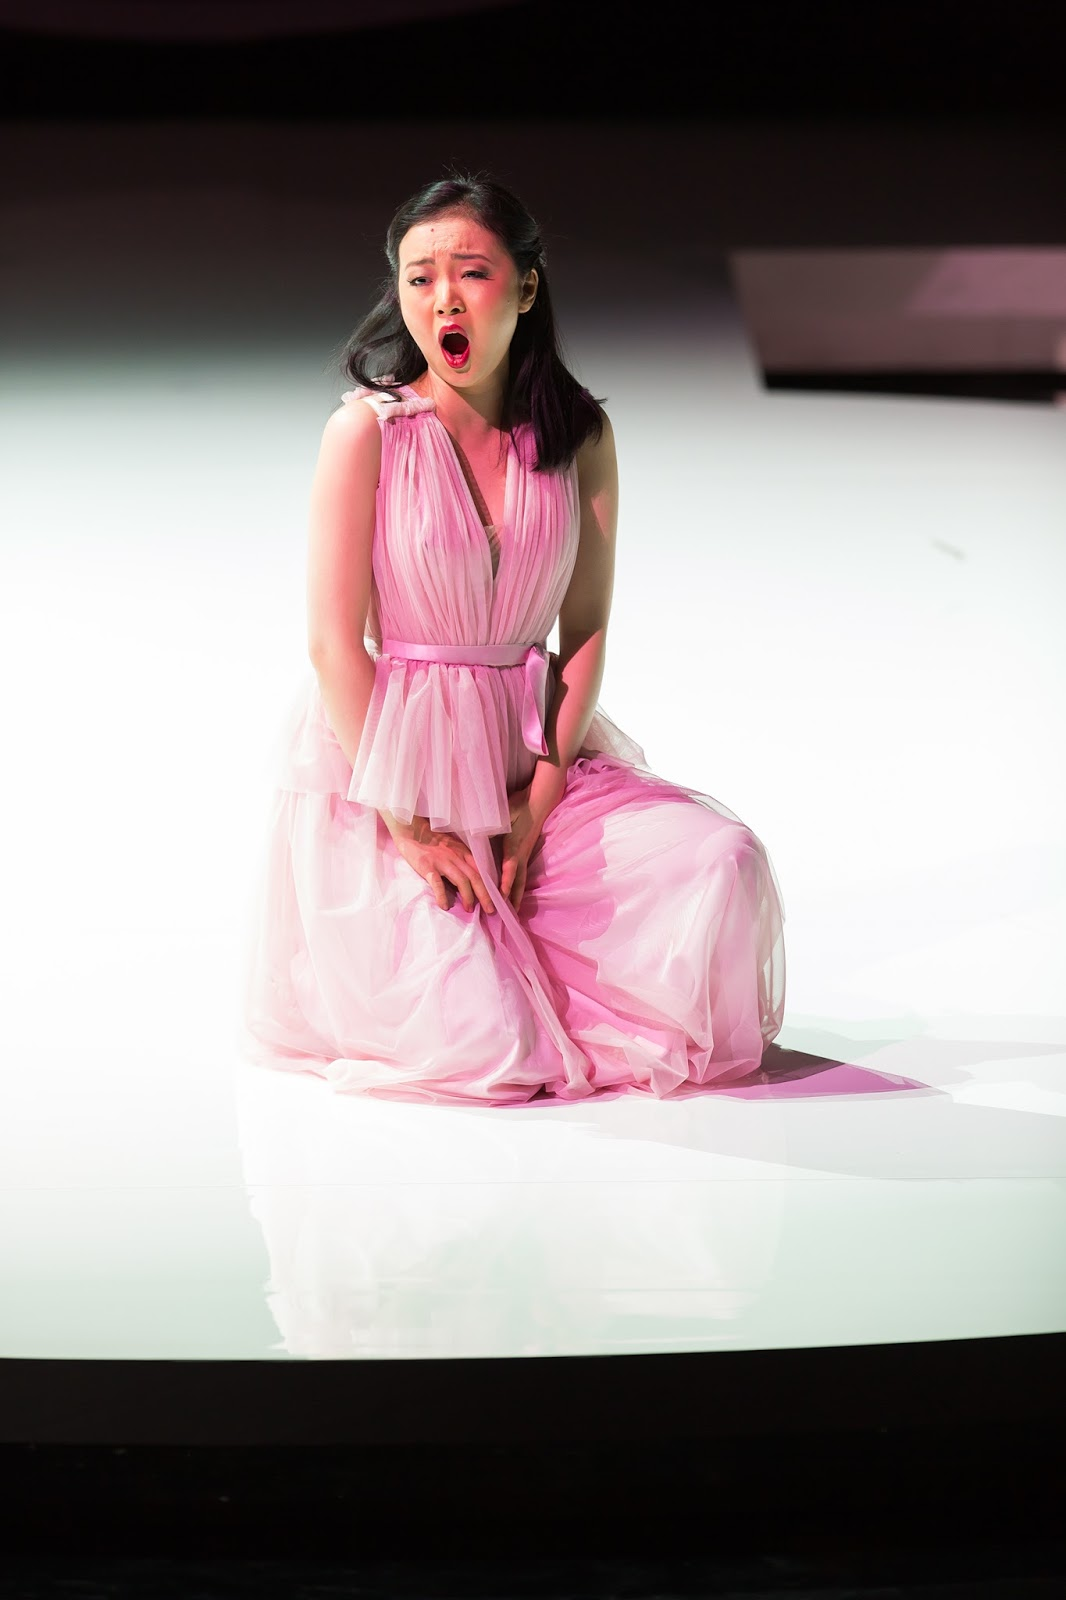 IN PERFORMANCE: soprano YING FANG as Morgana in Washington National Opera's production of Georg Friedrich Händel's ALCINA, November 2017 [Photo by Scott Suchman, © by Washington National Opera]